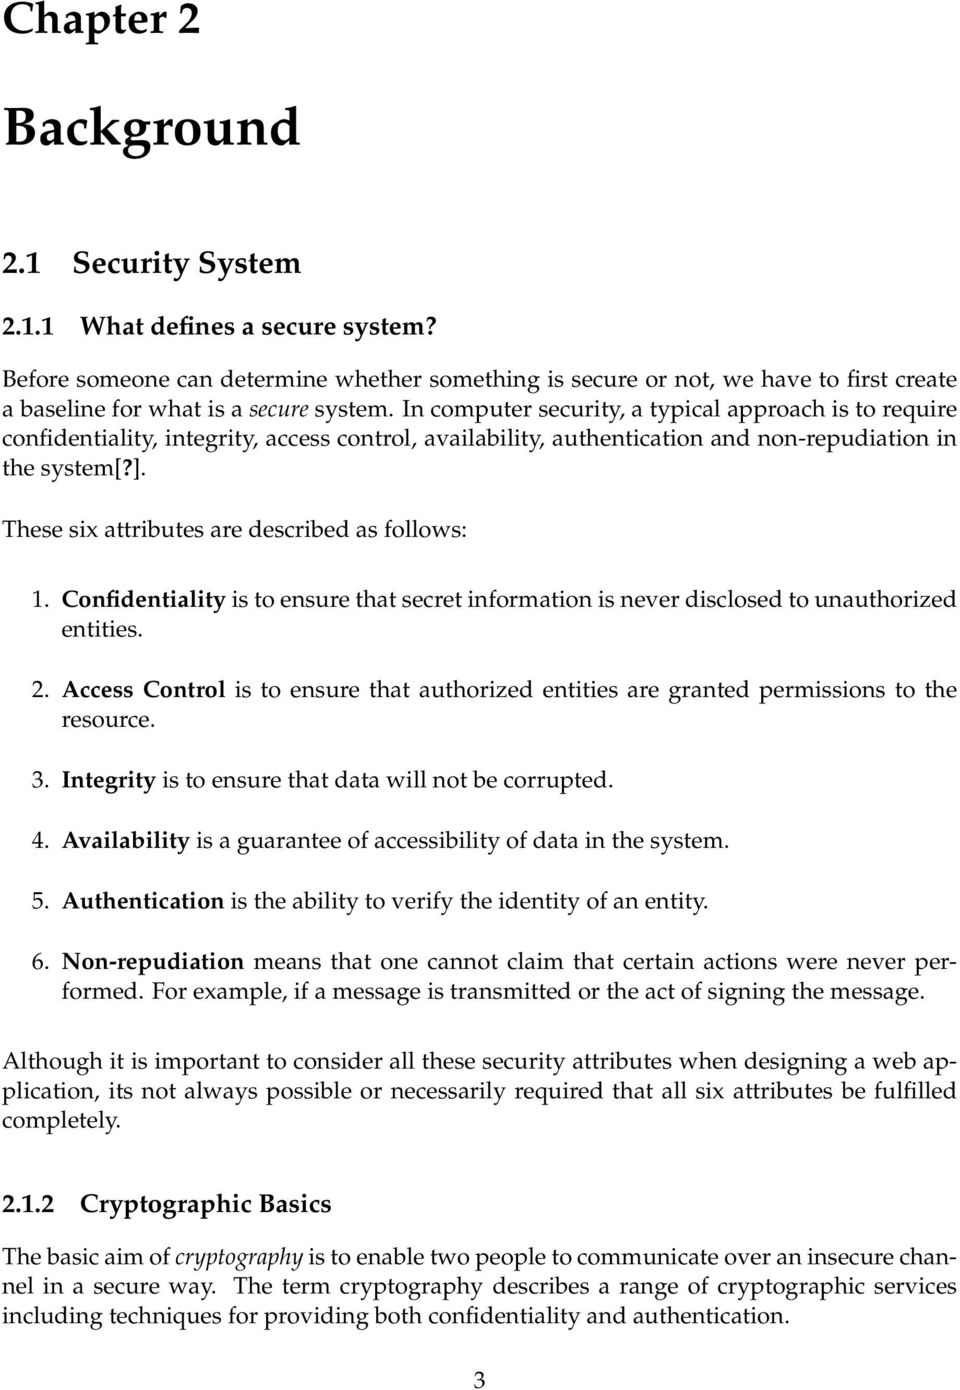 In computer security, a typical approach is to require confidentiality, integrity, access control, availability, authentication and non-repudiation in the system[?].